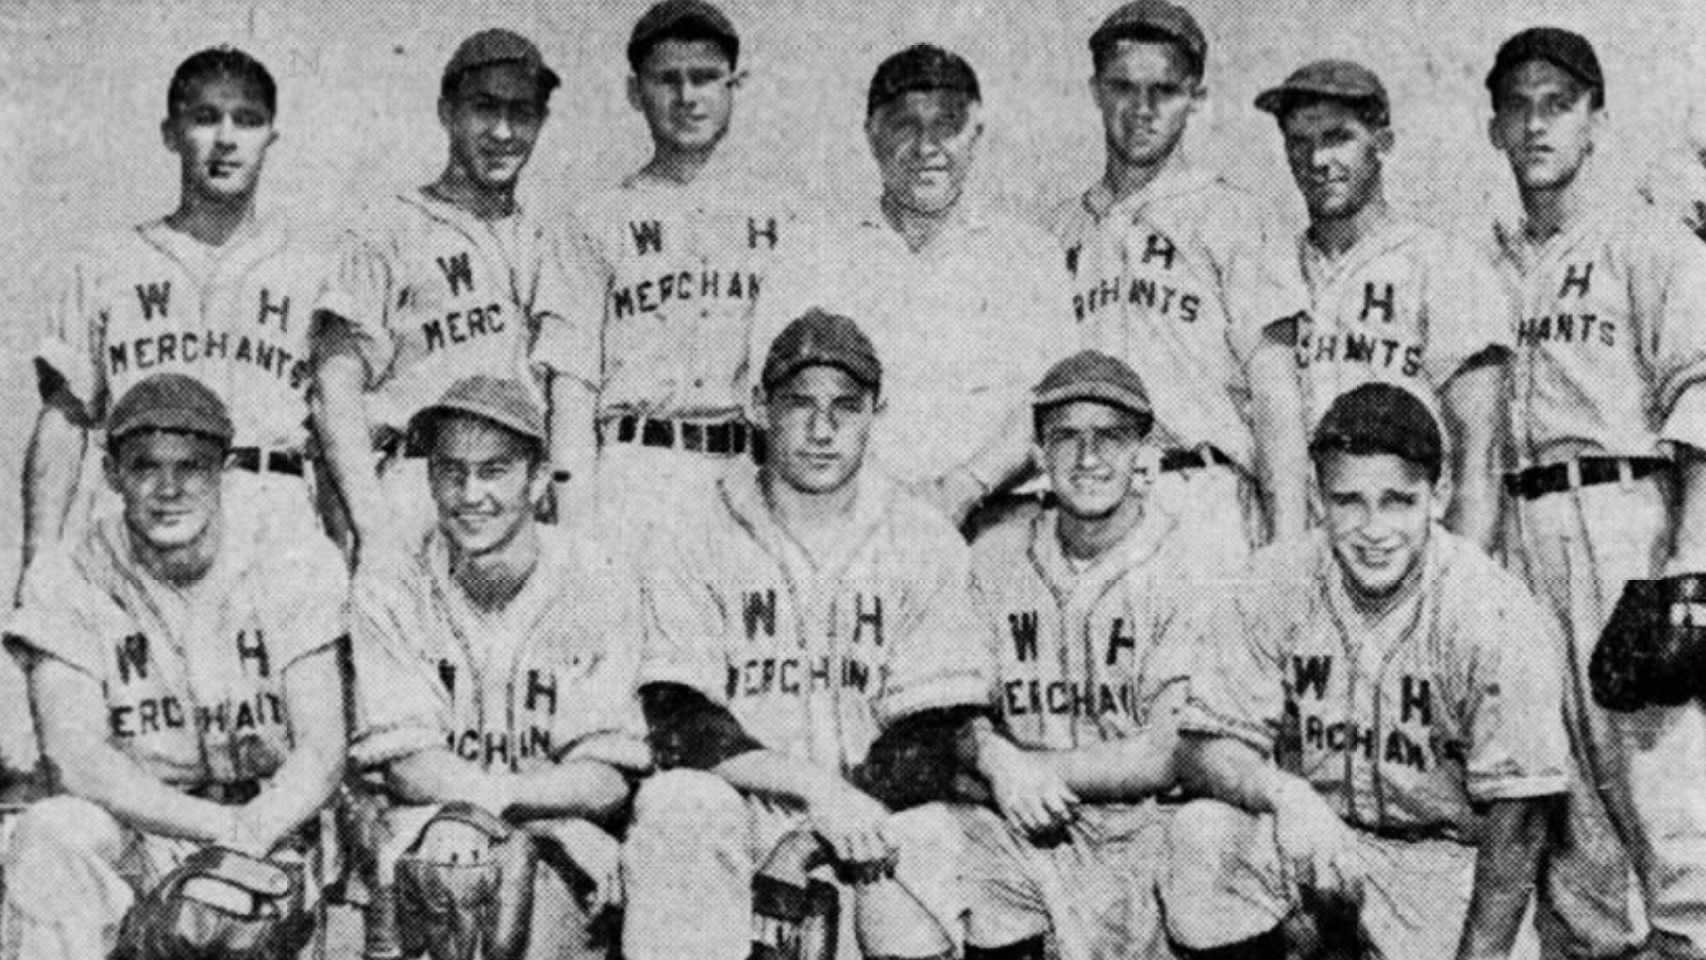 1949 West Hartford Merchants